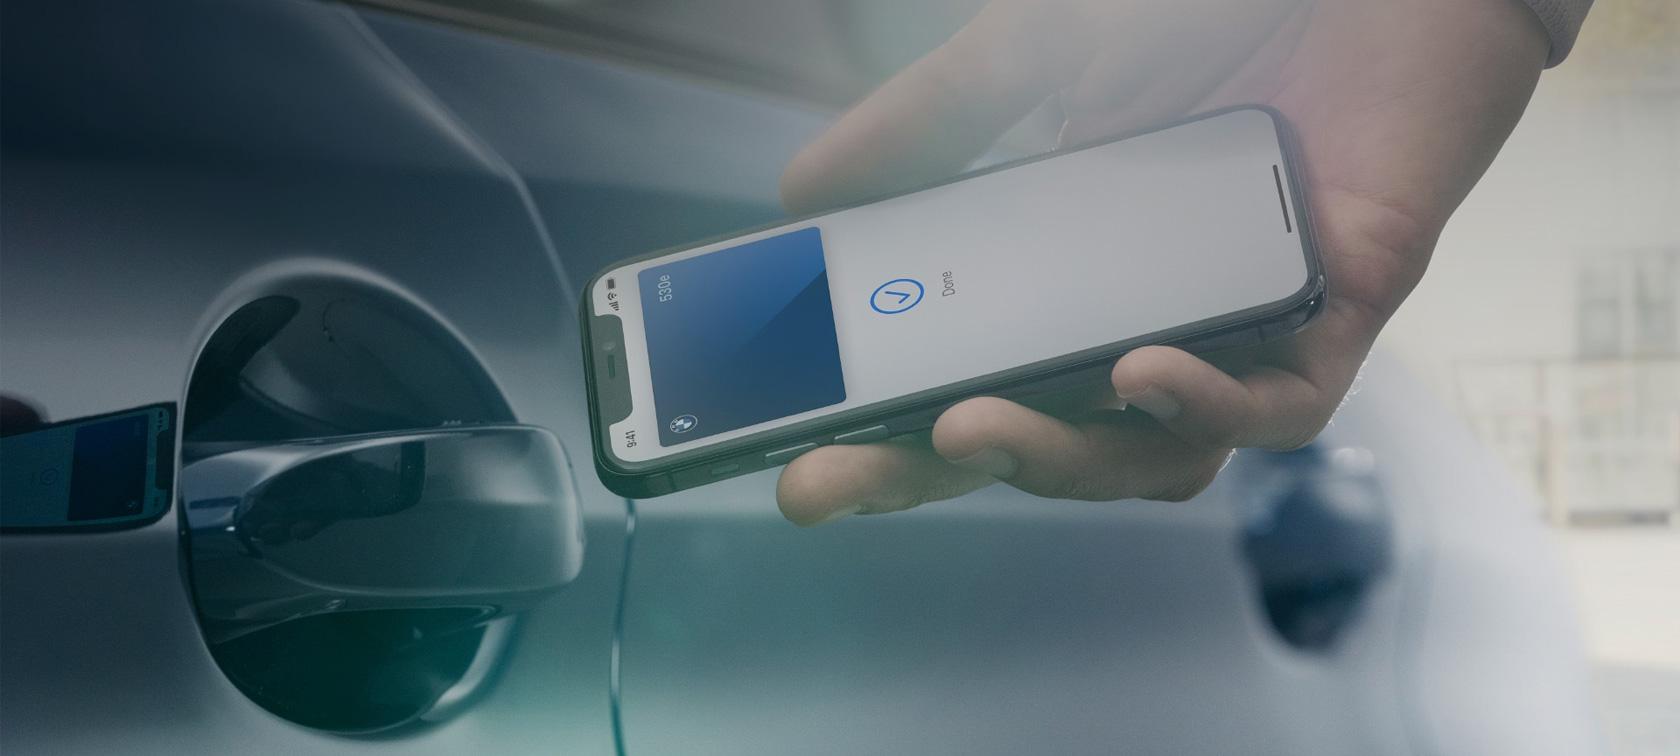 BMW Digital Key: El iPhone como llave digital